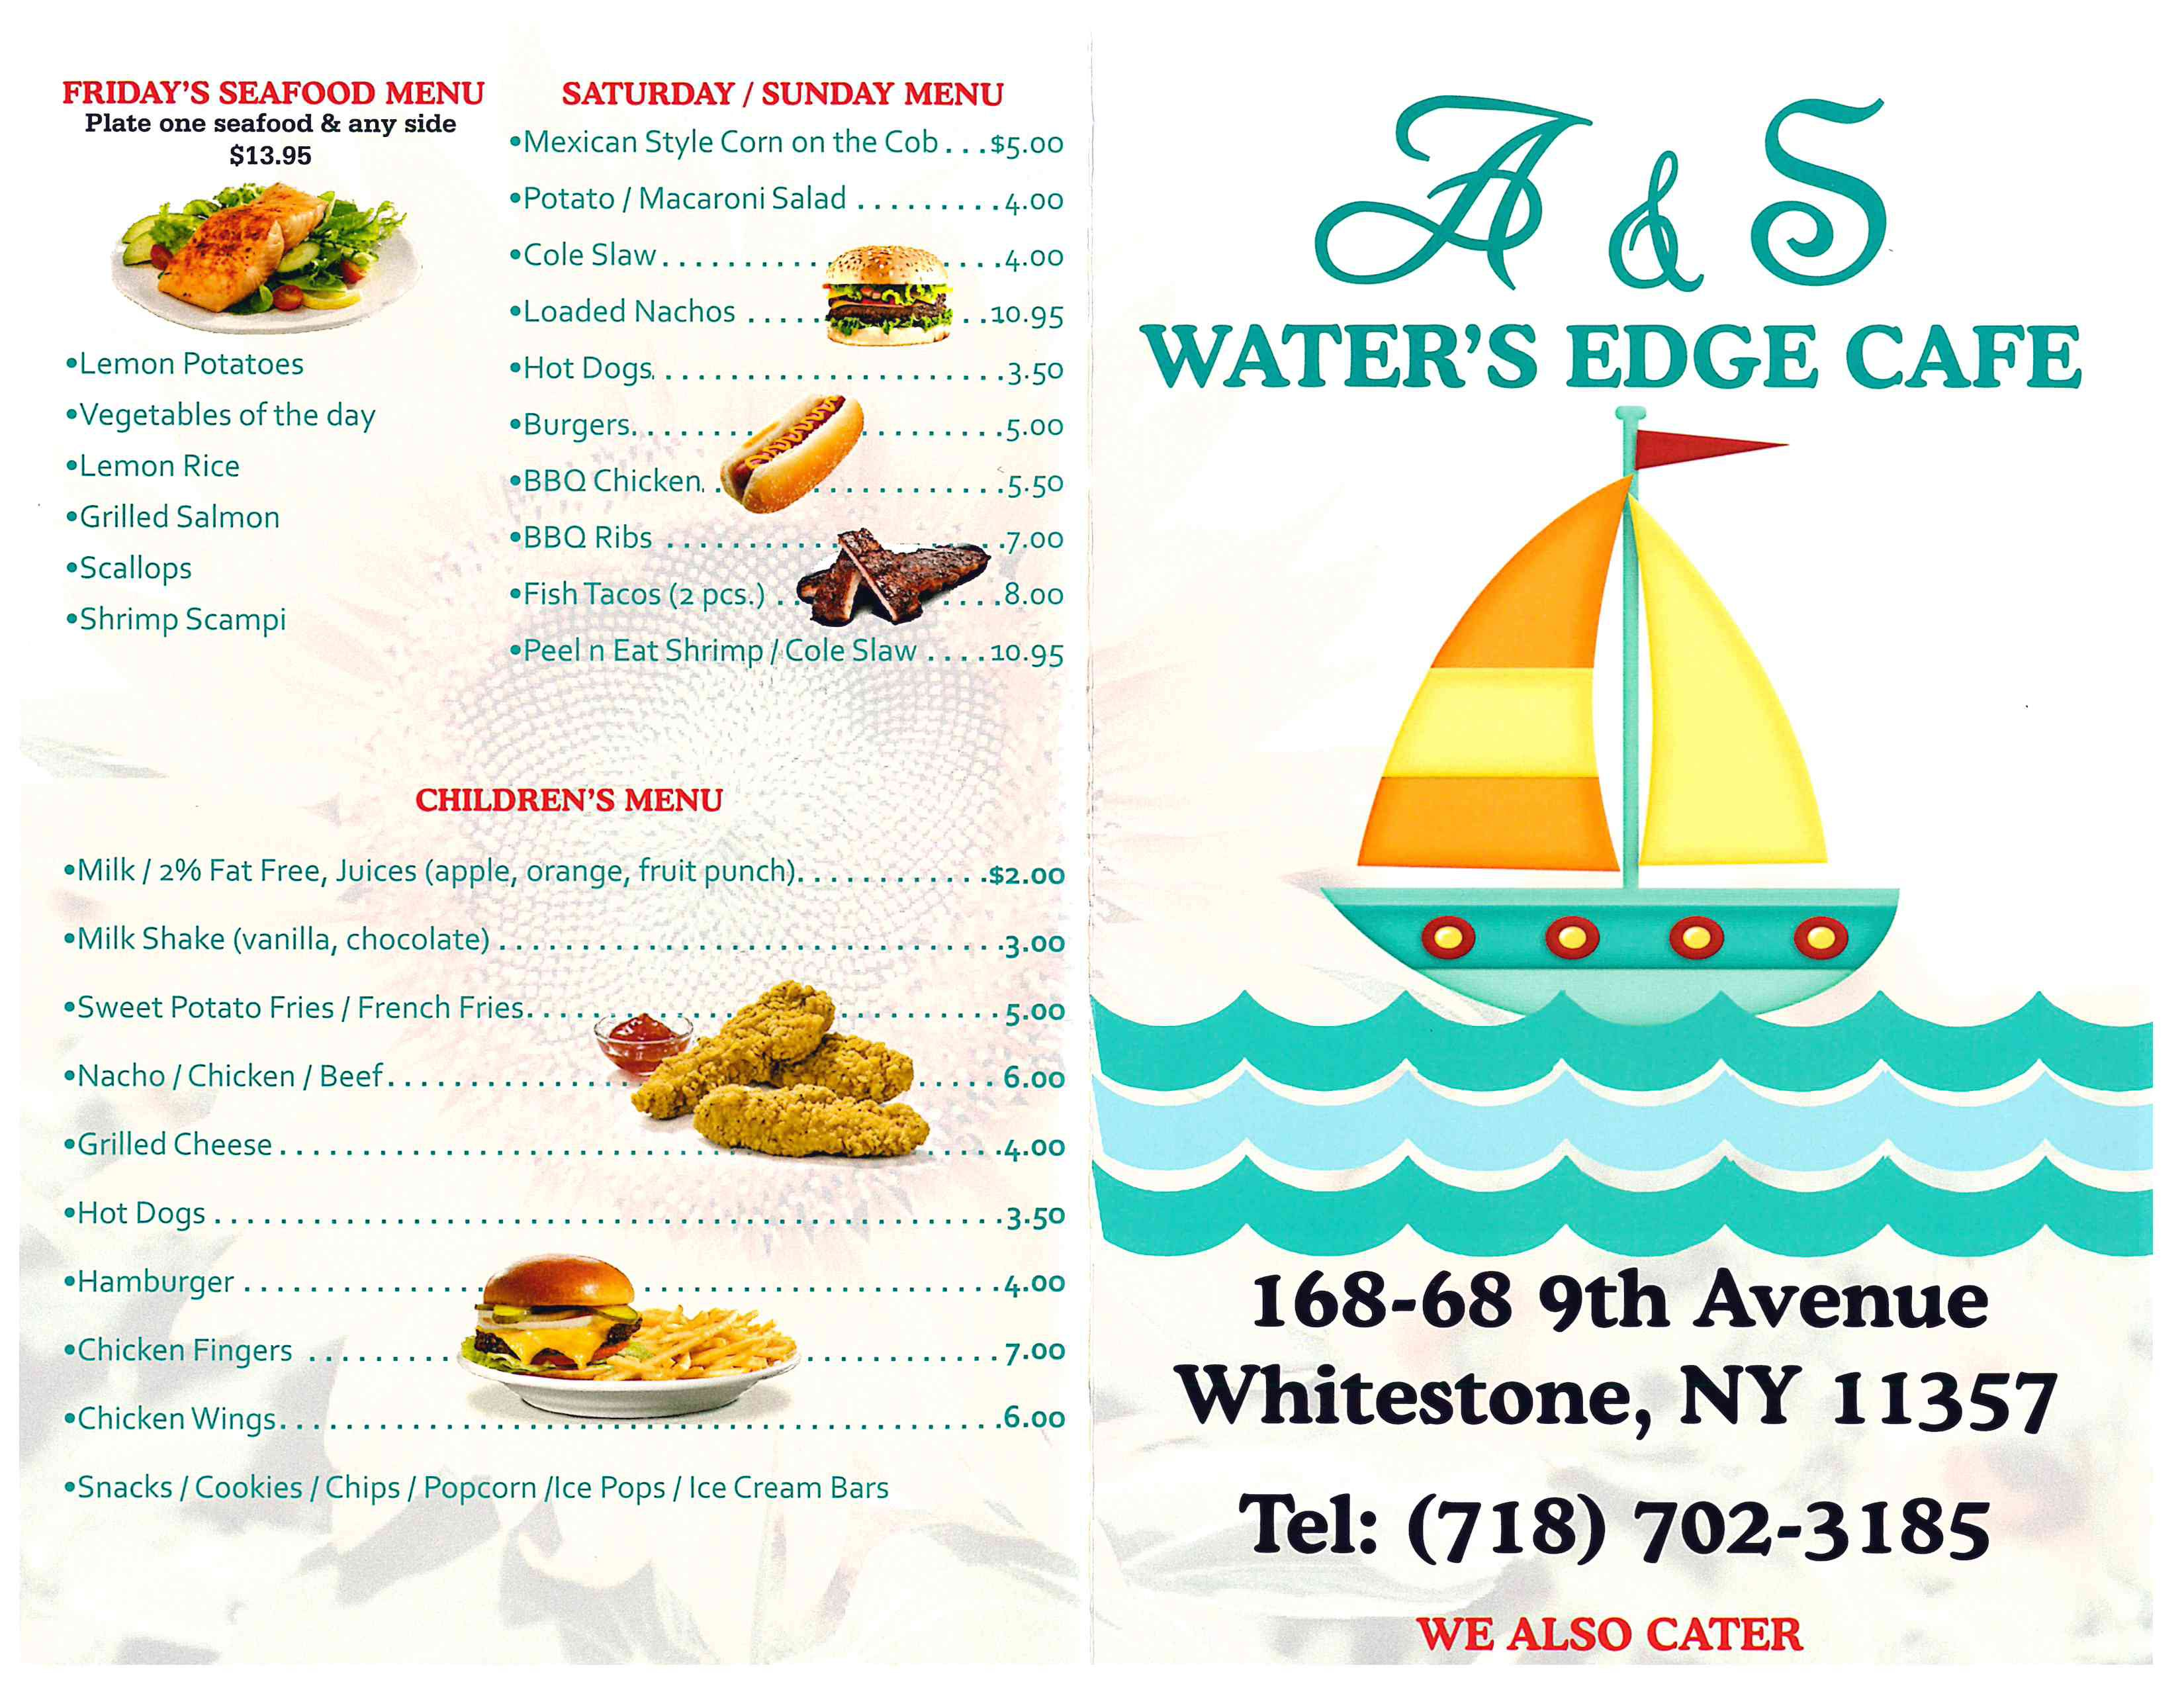 A & S Water's Edge Cafe Menu 2.jpg